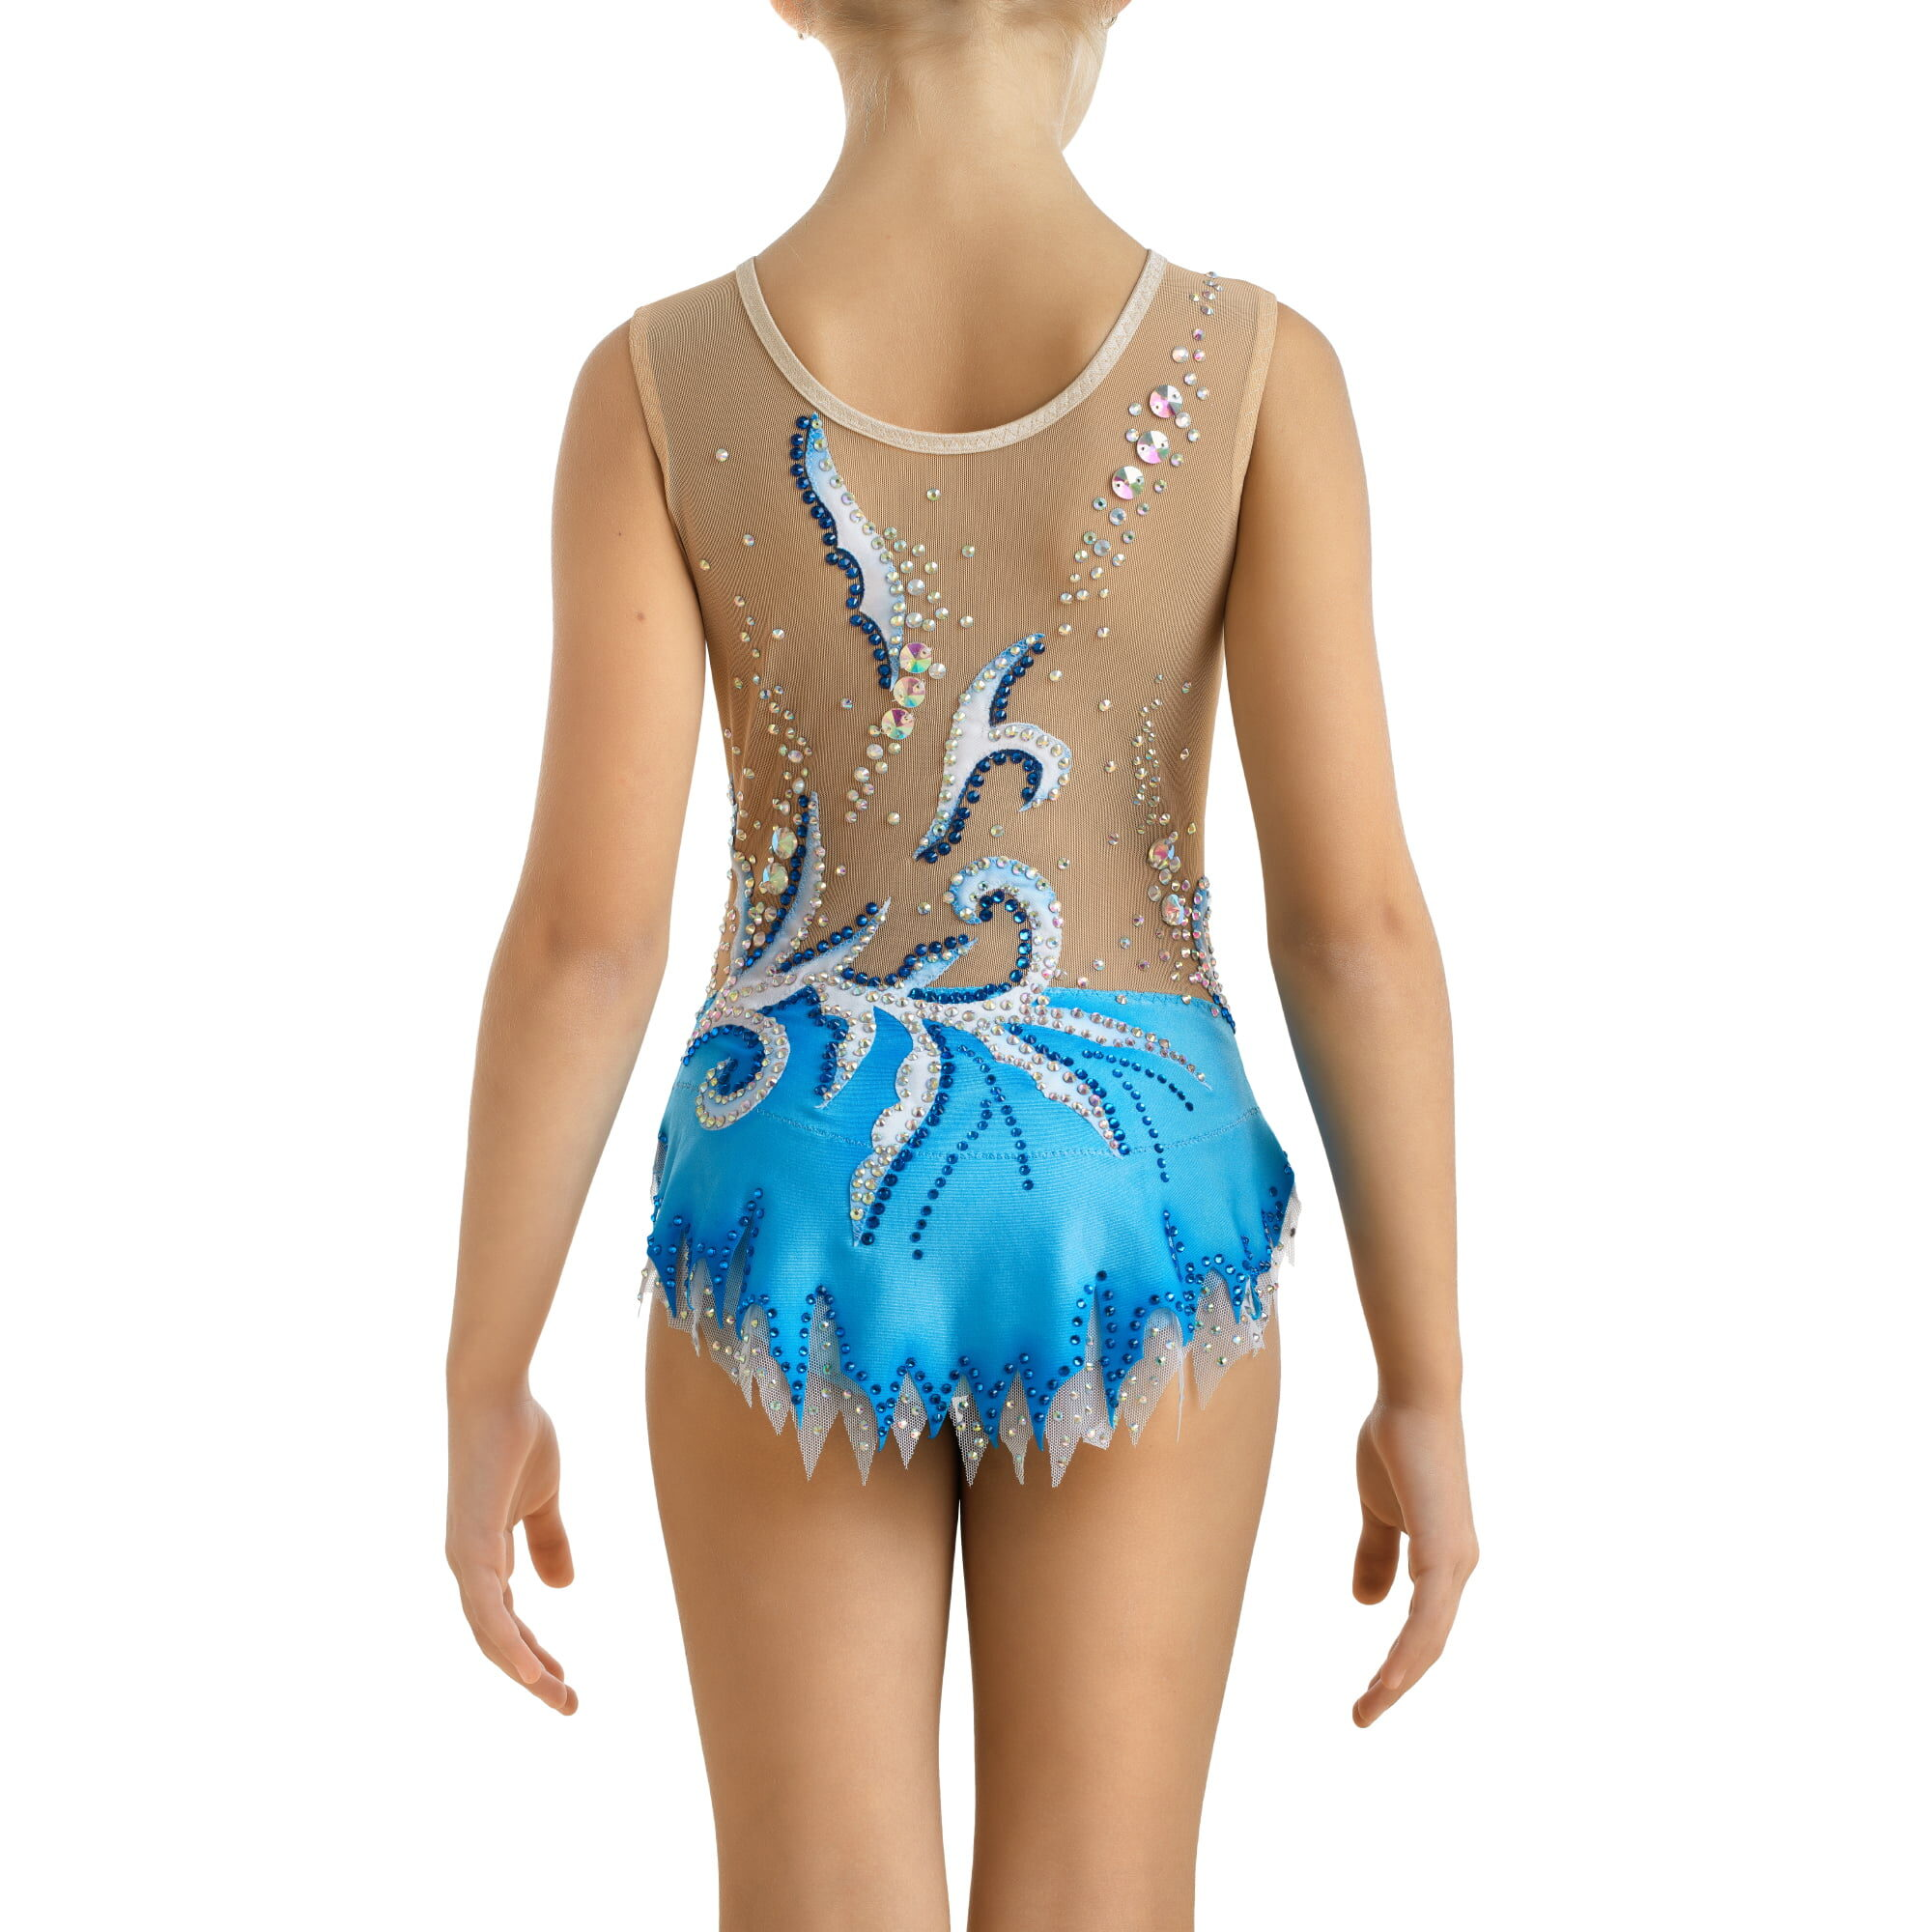 Blue, silver, mesh Rhythmic Gymnastics Leotard 250 for competitions